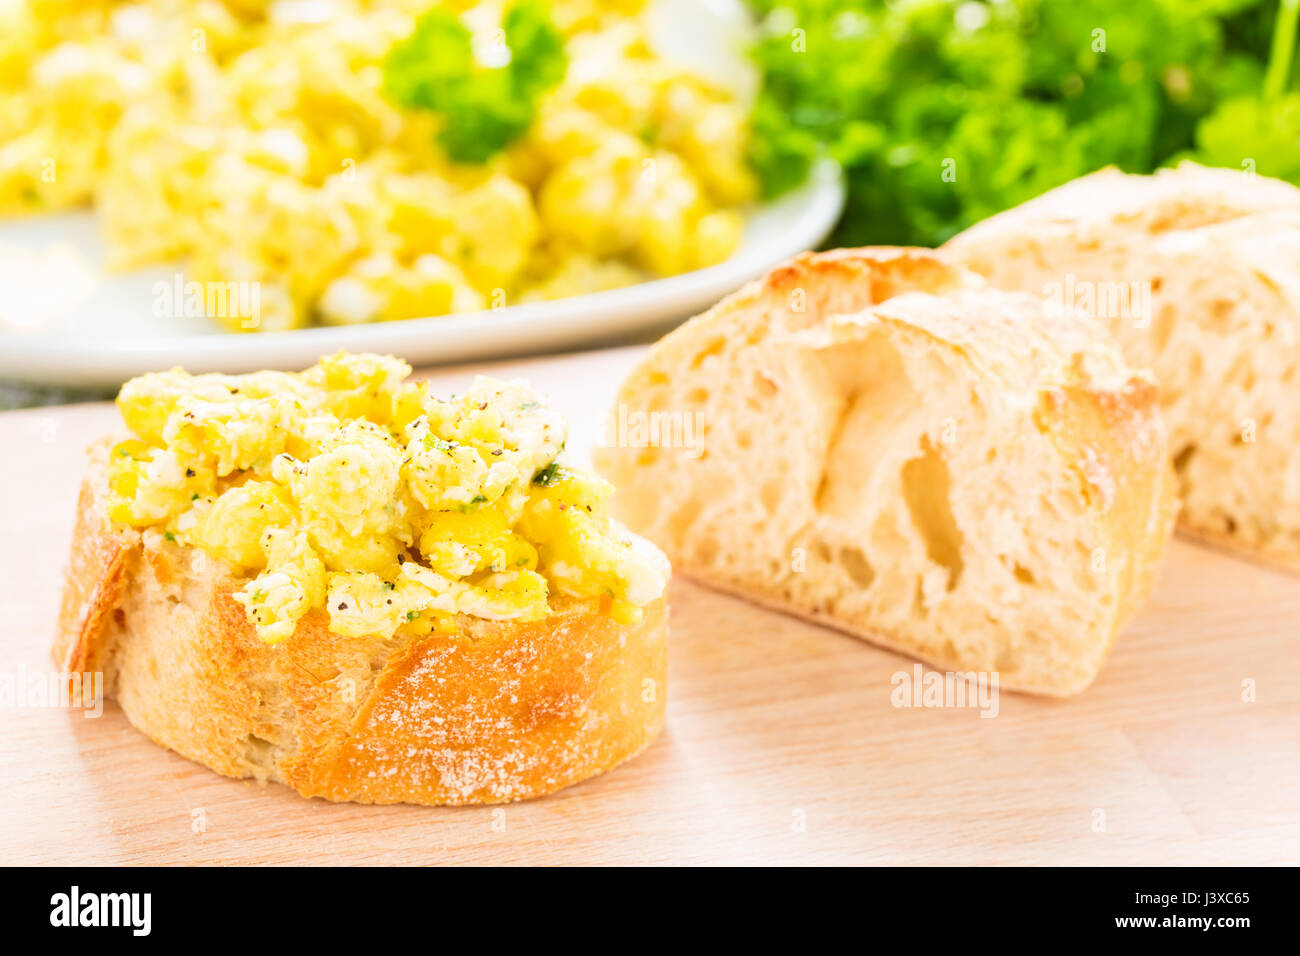 scrambled eggs with chive, herbs and baguette - Stock Image